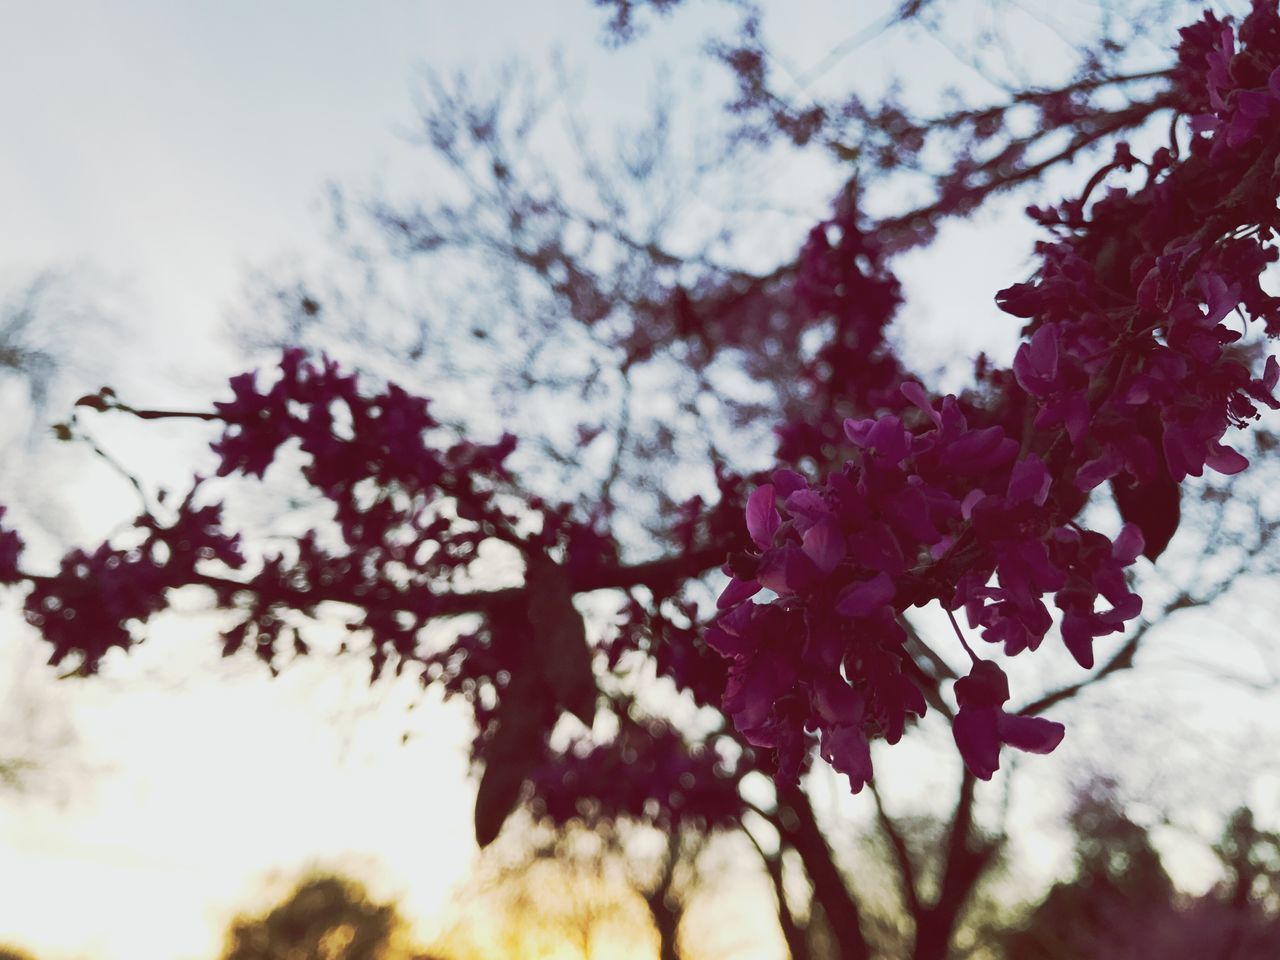 flower, nature, beauty in nature, growth, tree, fragility, blossom, freshness, branch, no people, springtime, outdoors, selective focus, tranquility, day, low angle view, petal, close-up, scenics, sky, blooming, flower head